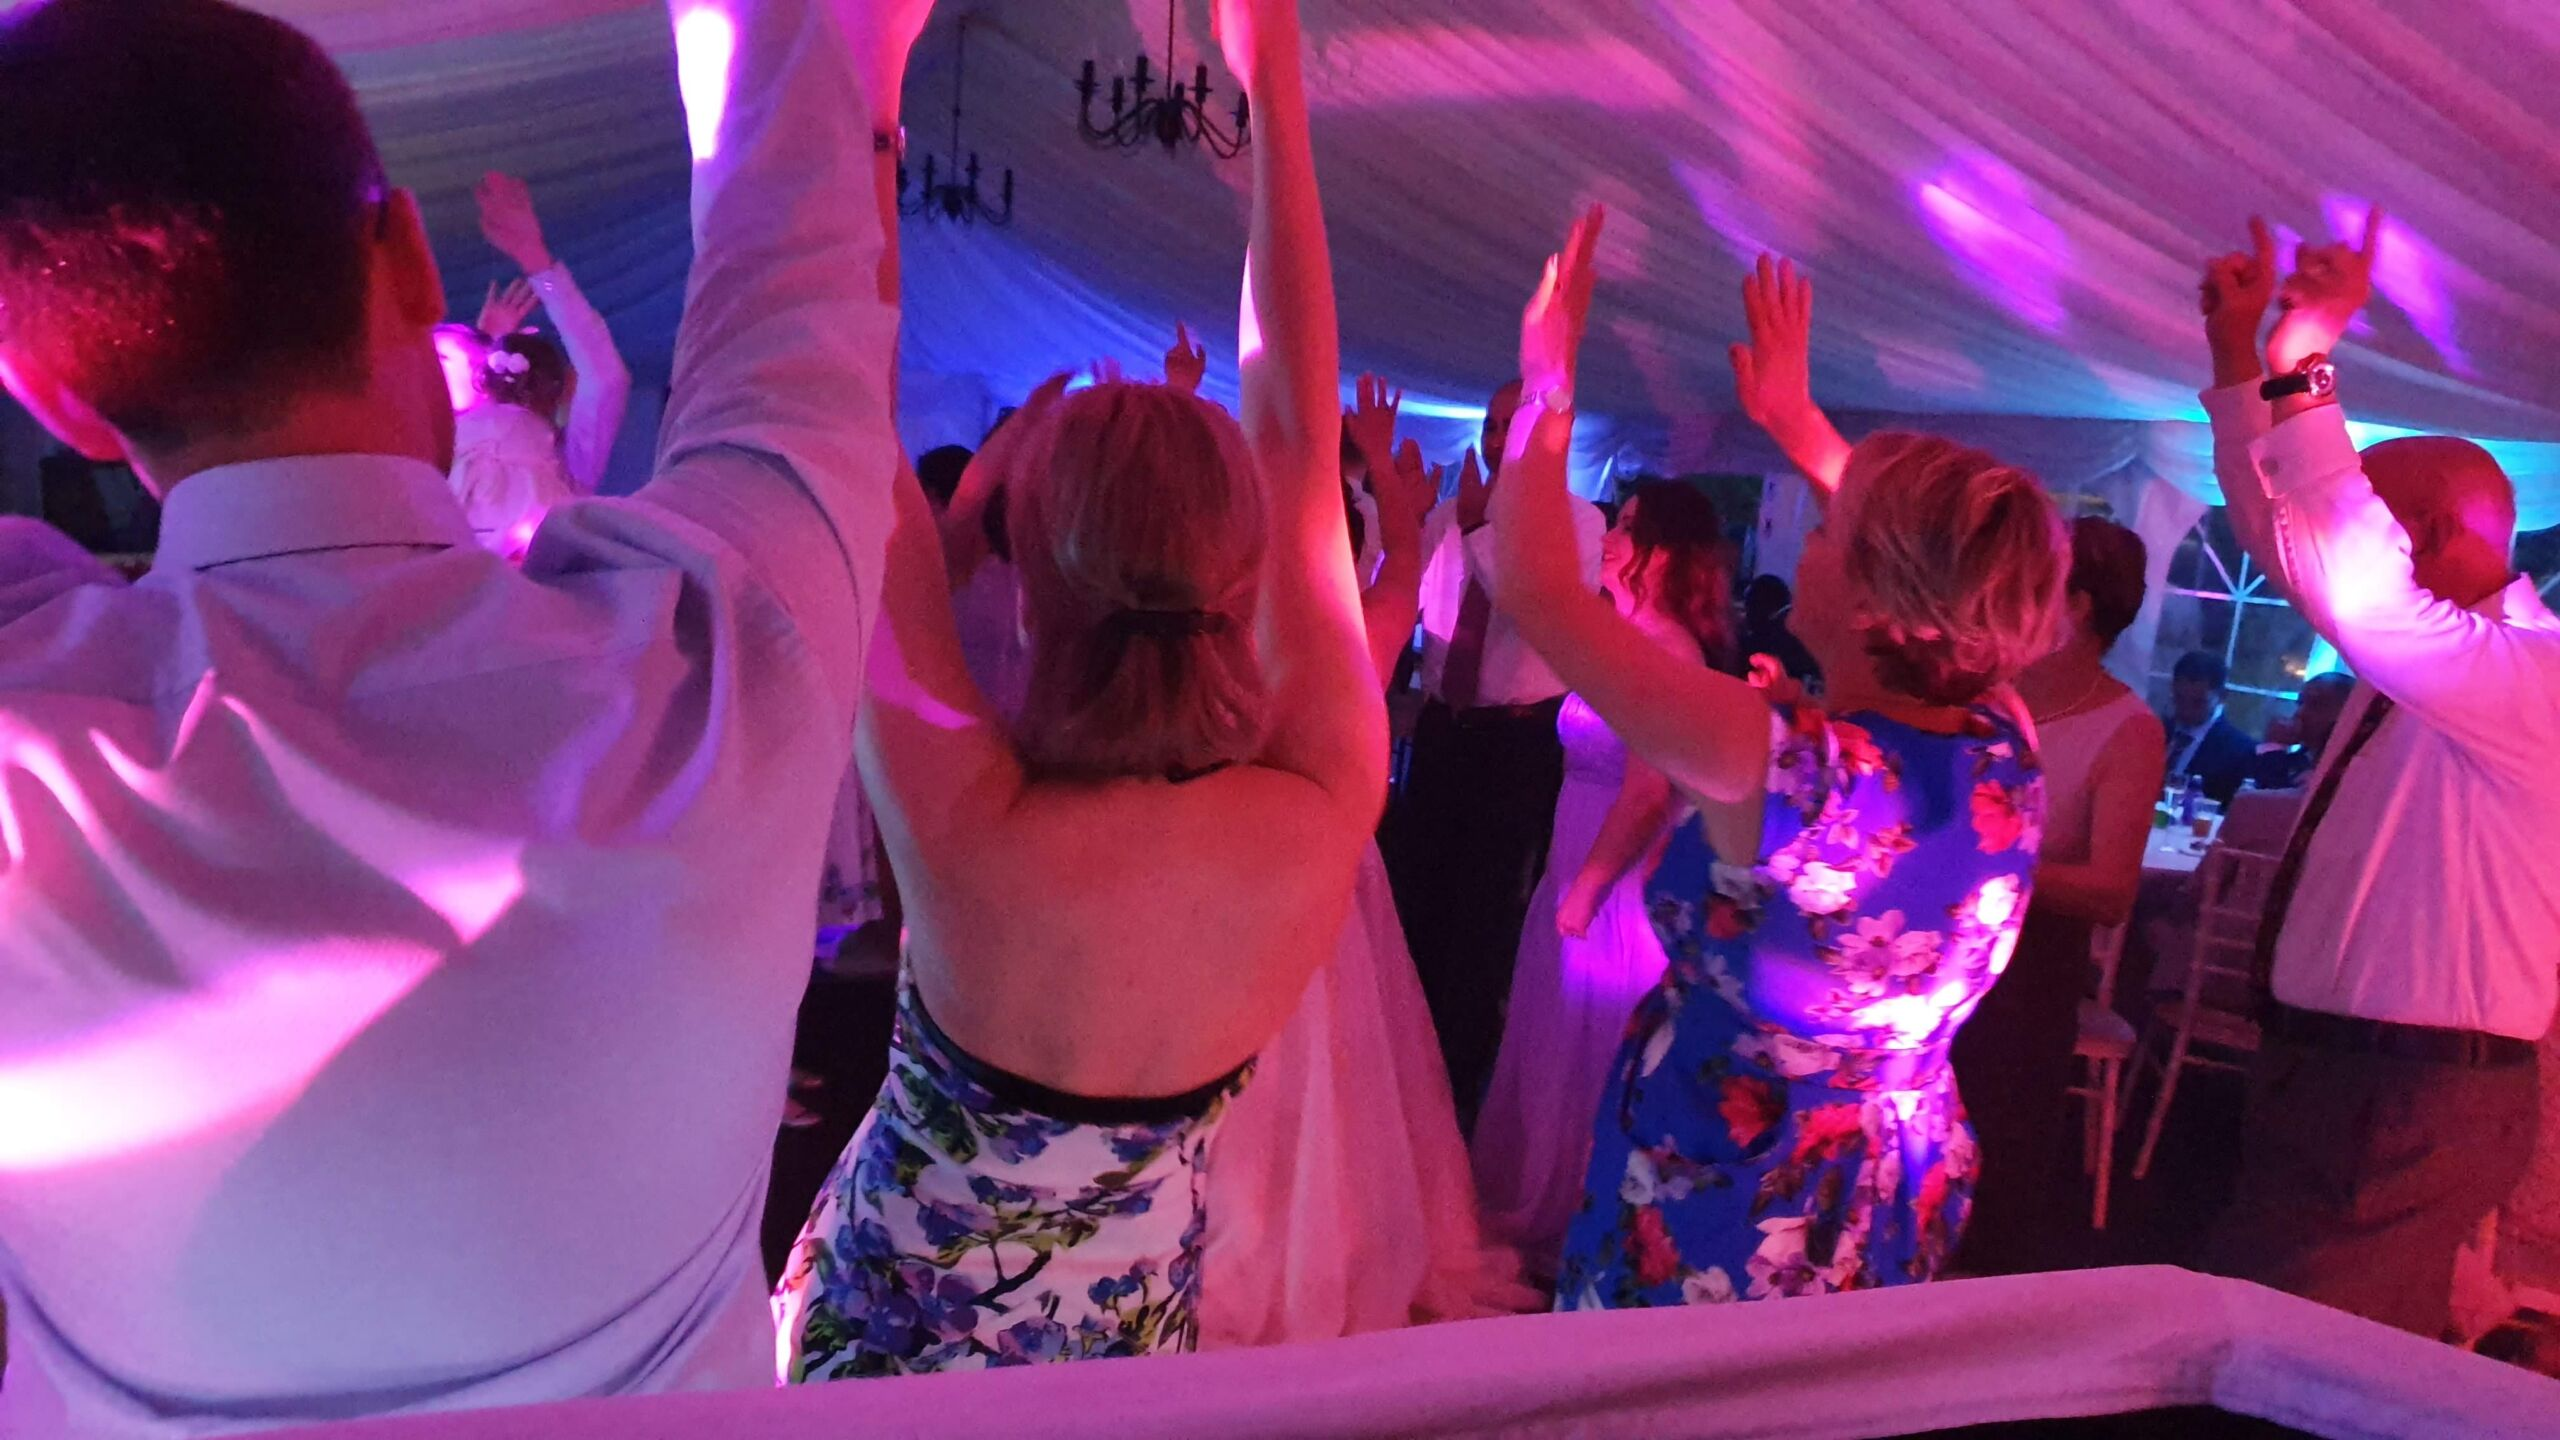 Dancers with hands in the air at a wedding